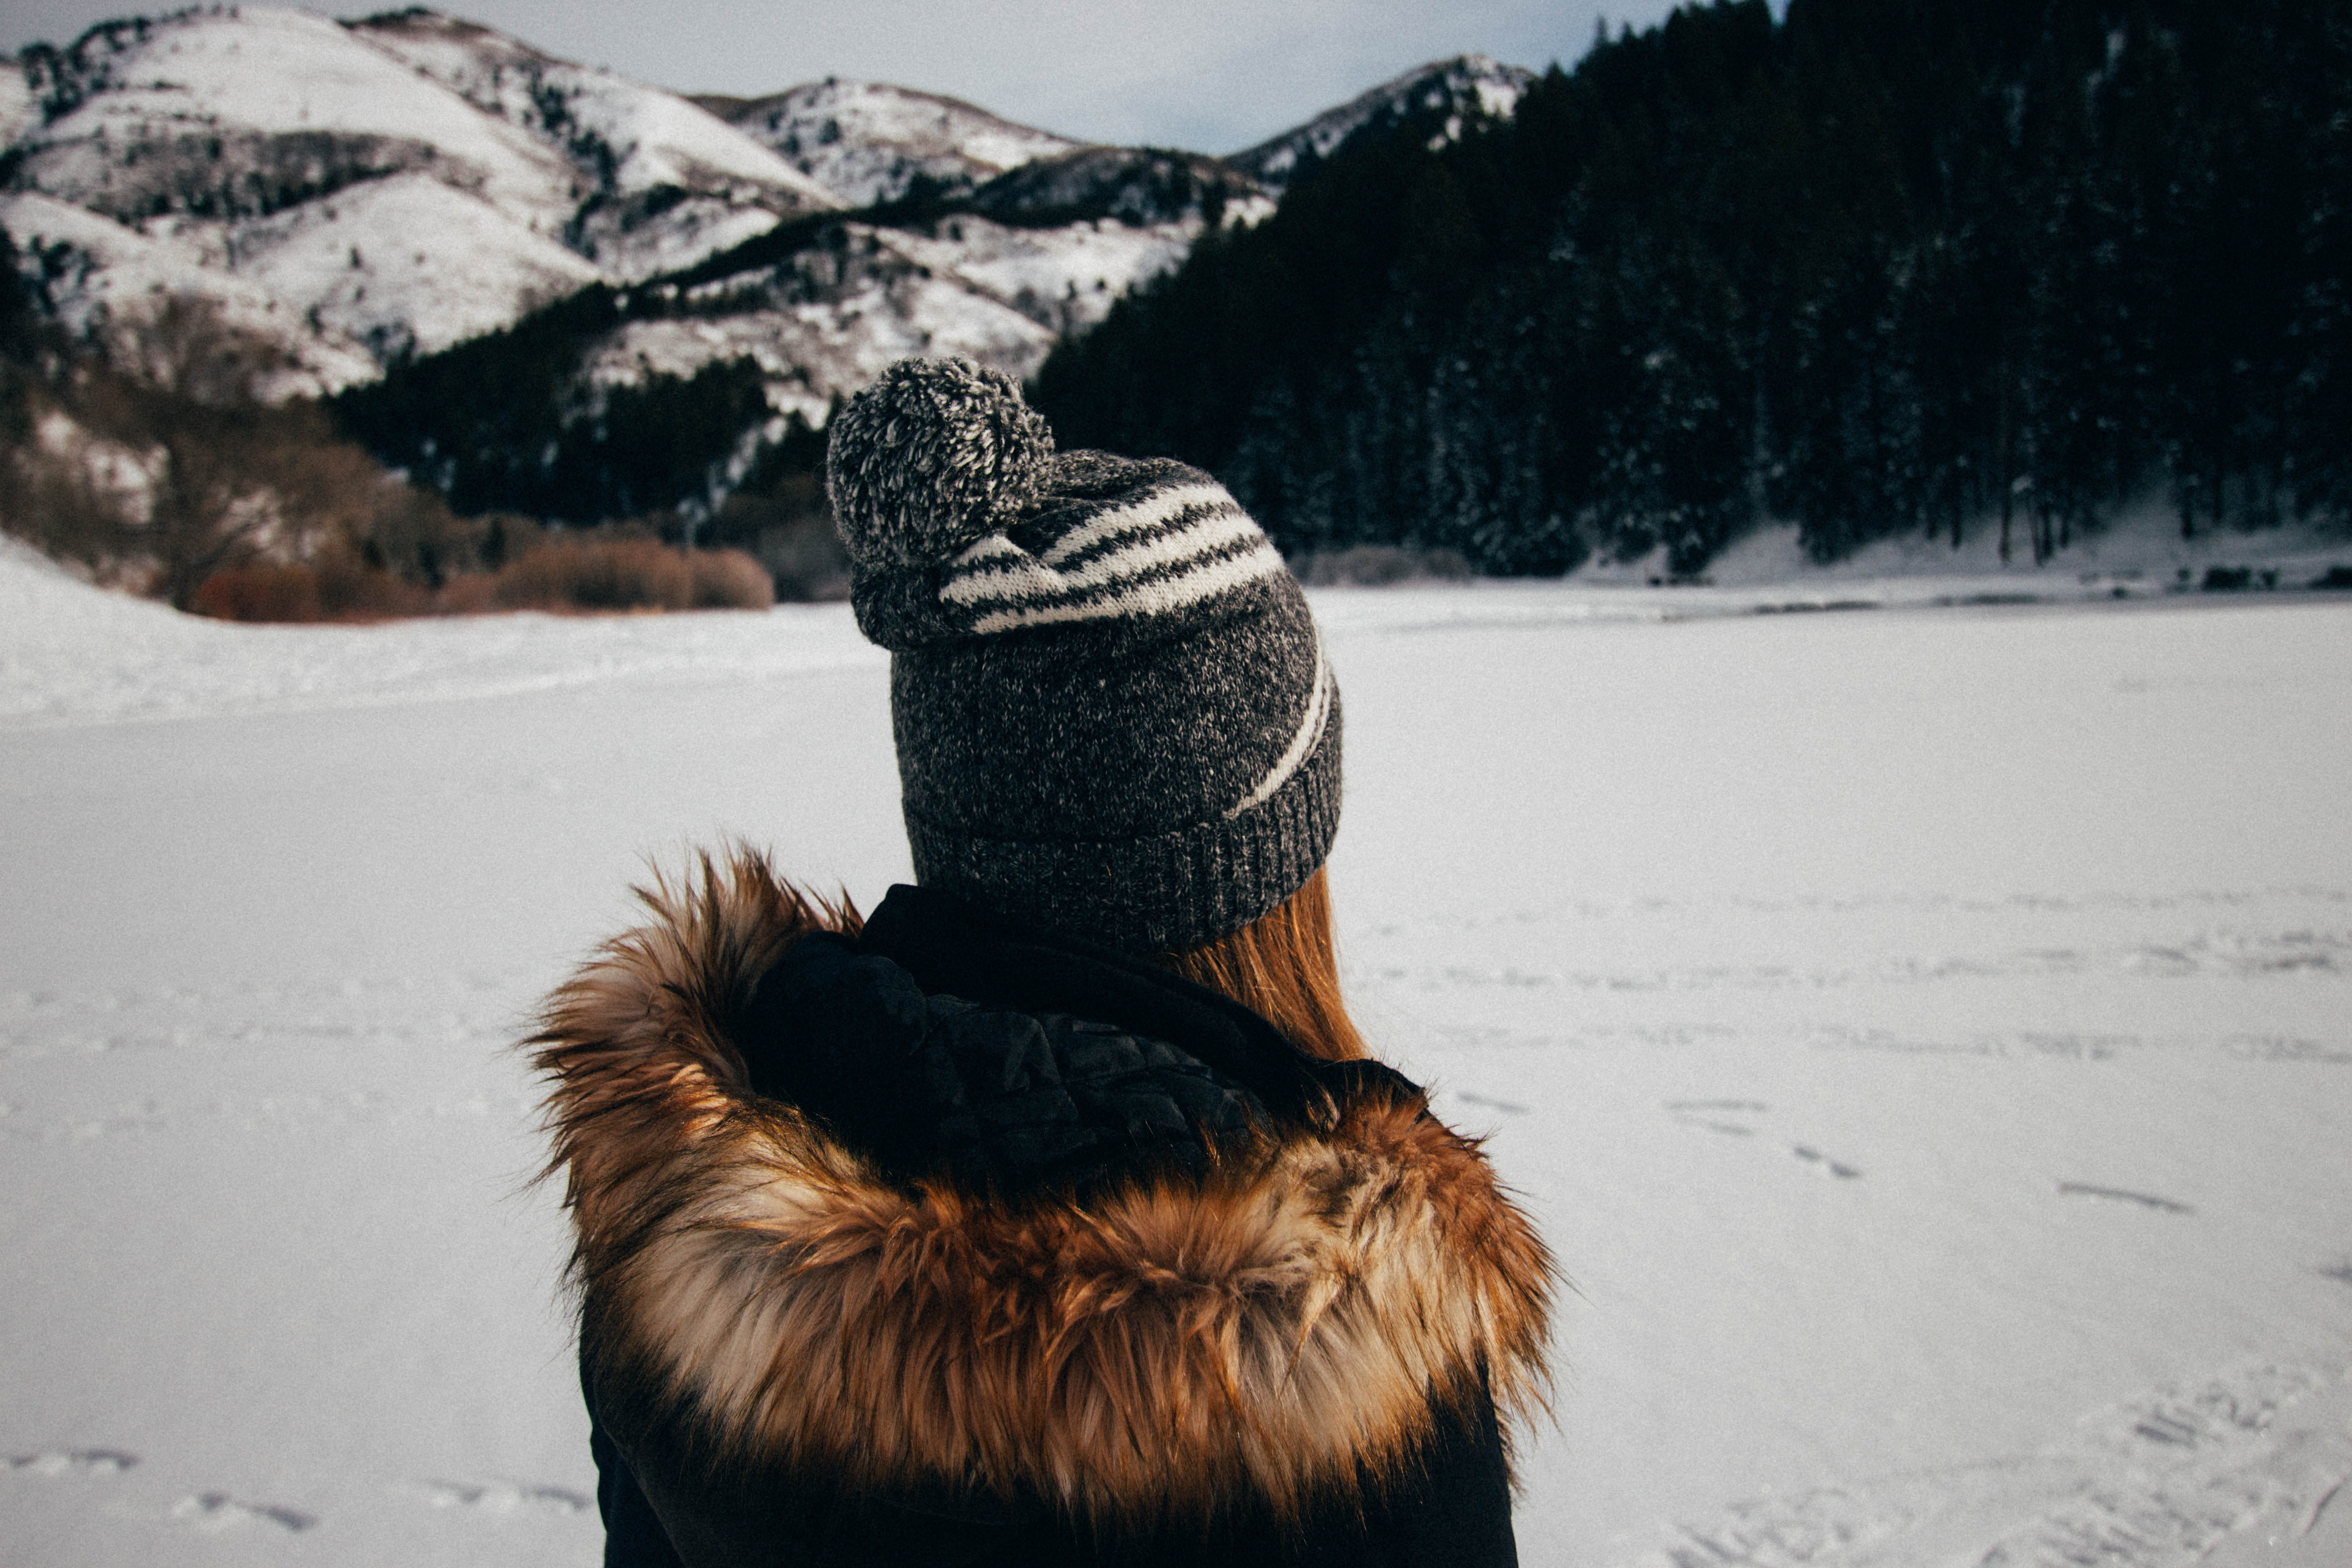 A woman in a fur coat and hat staring at a snow-covered mountain